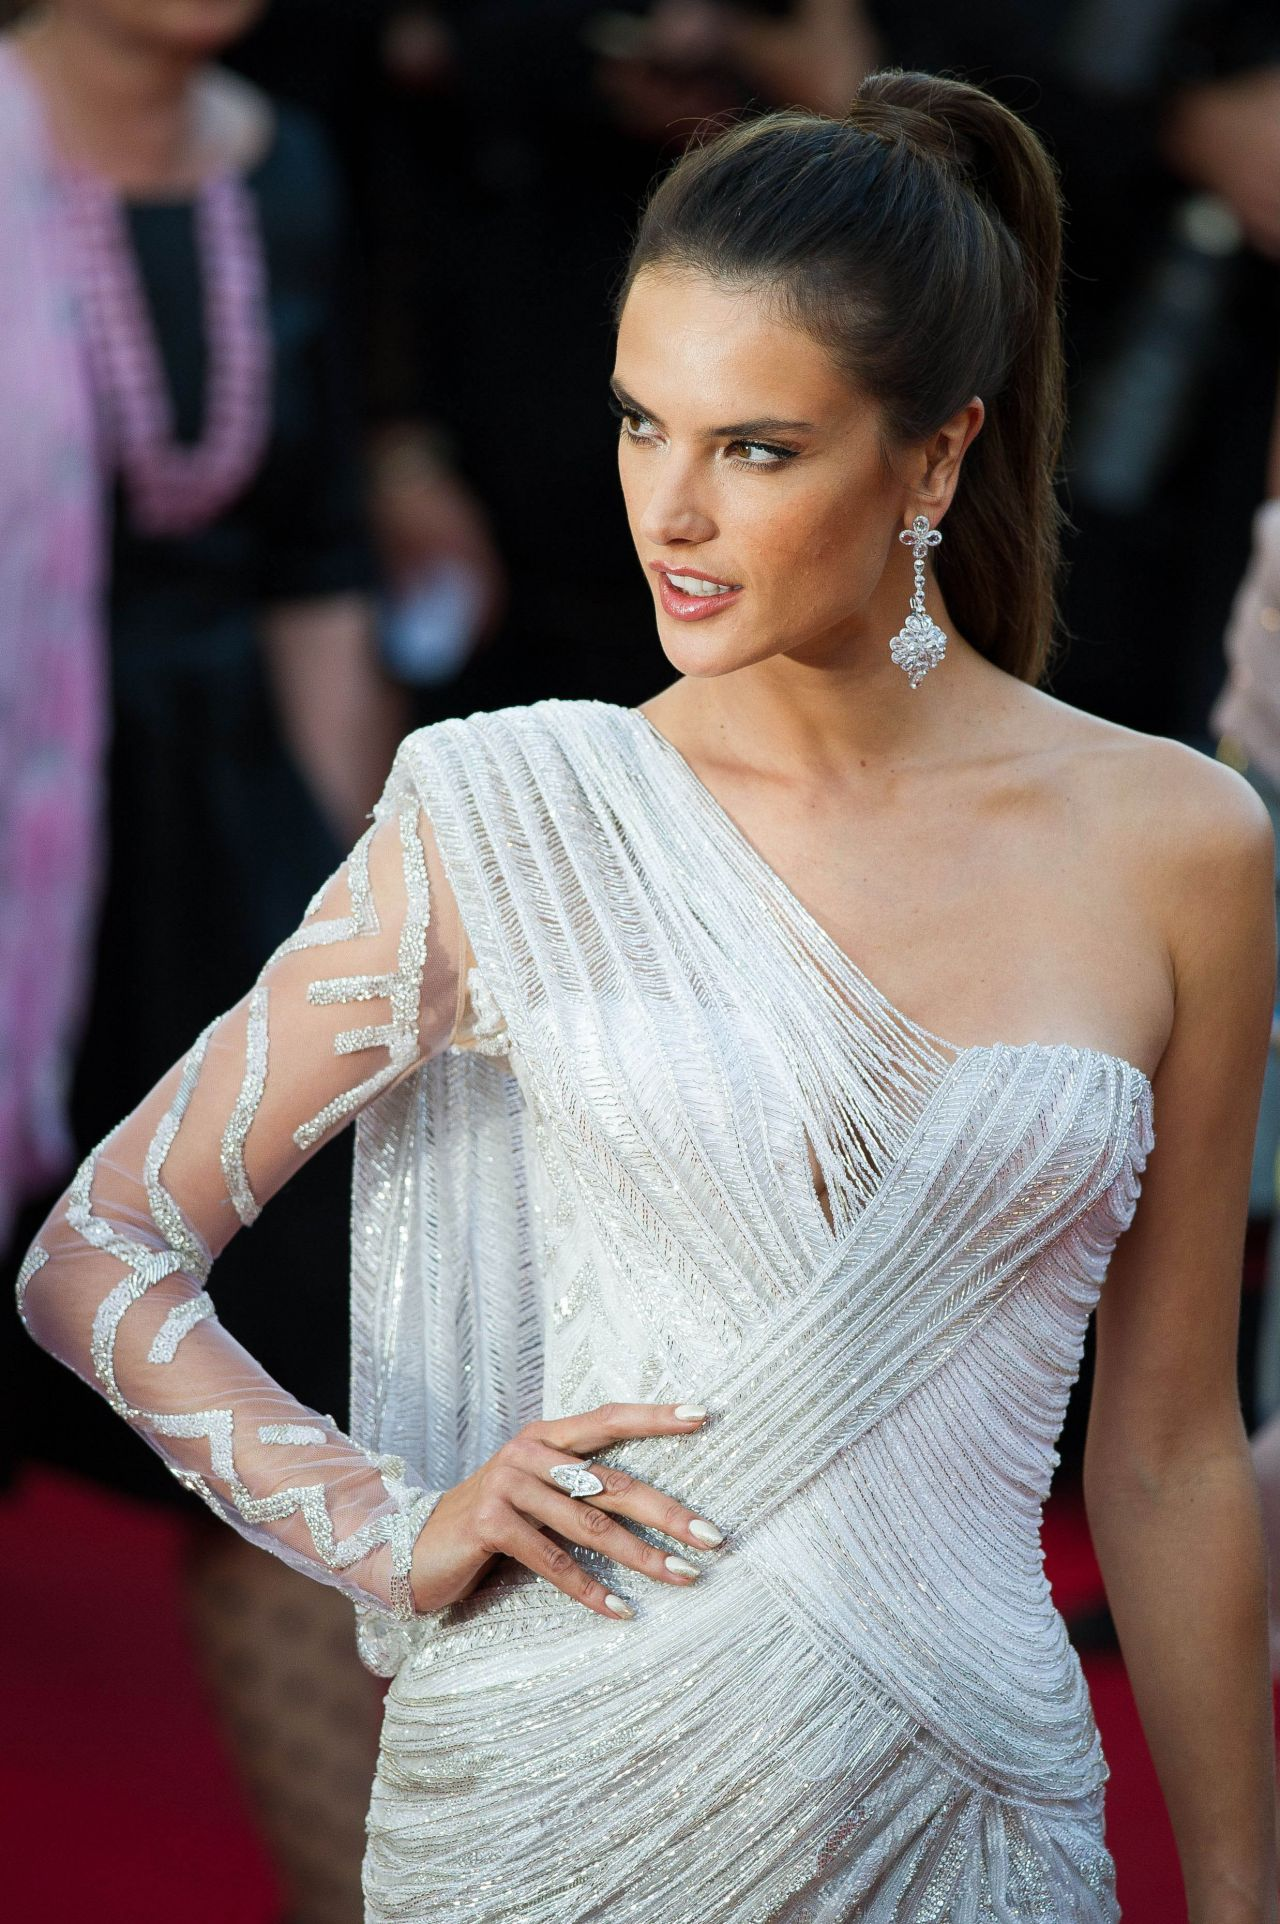 Alessandra Ambrosio Wearing Atelier Versace Dress Two